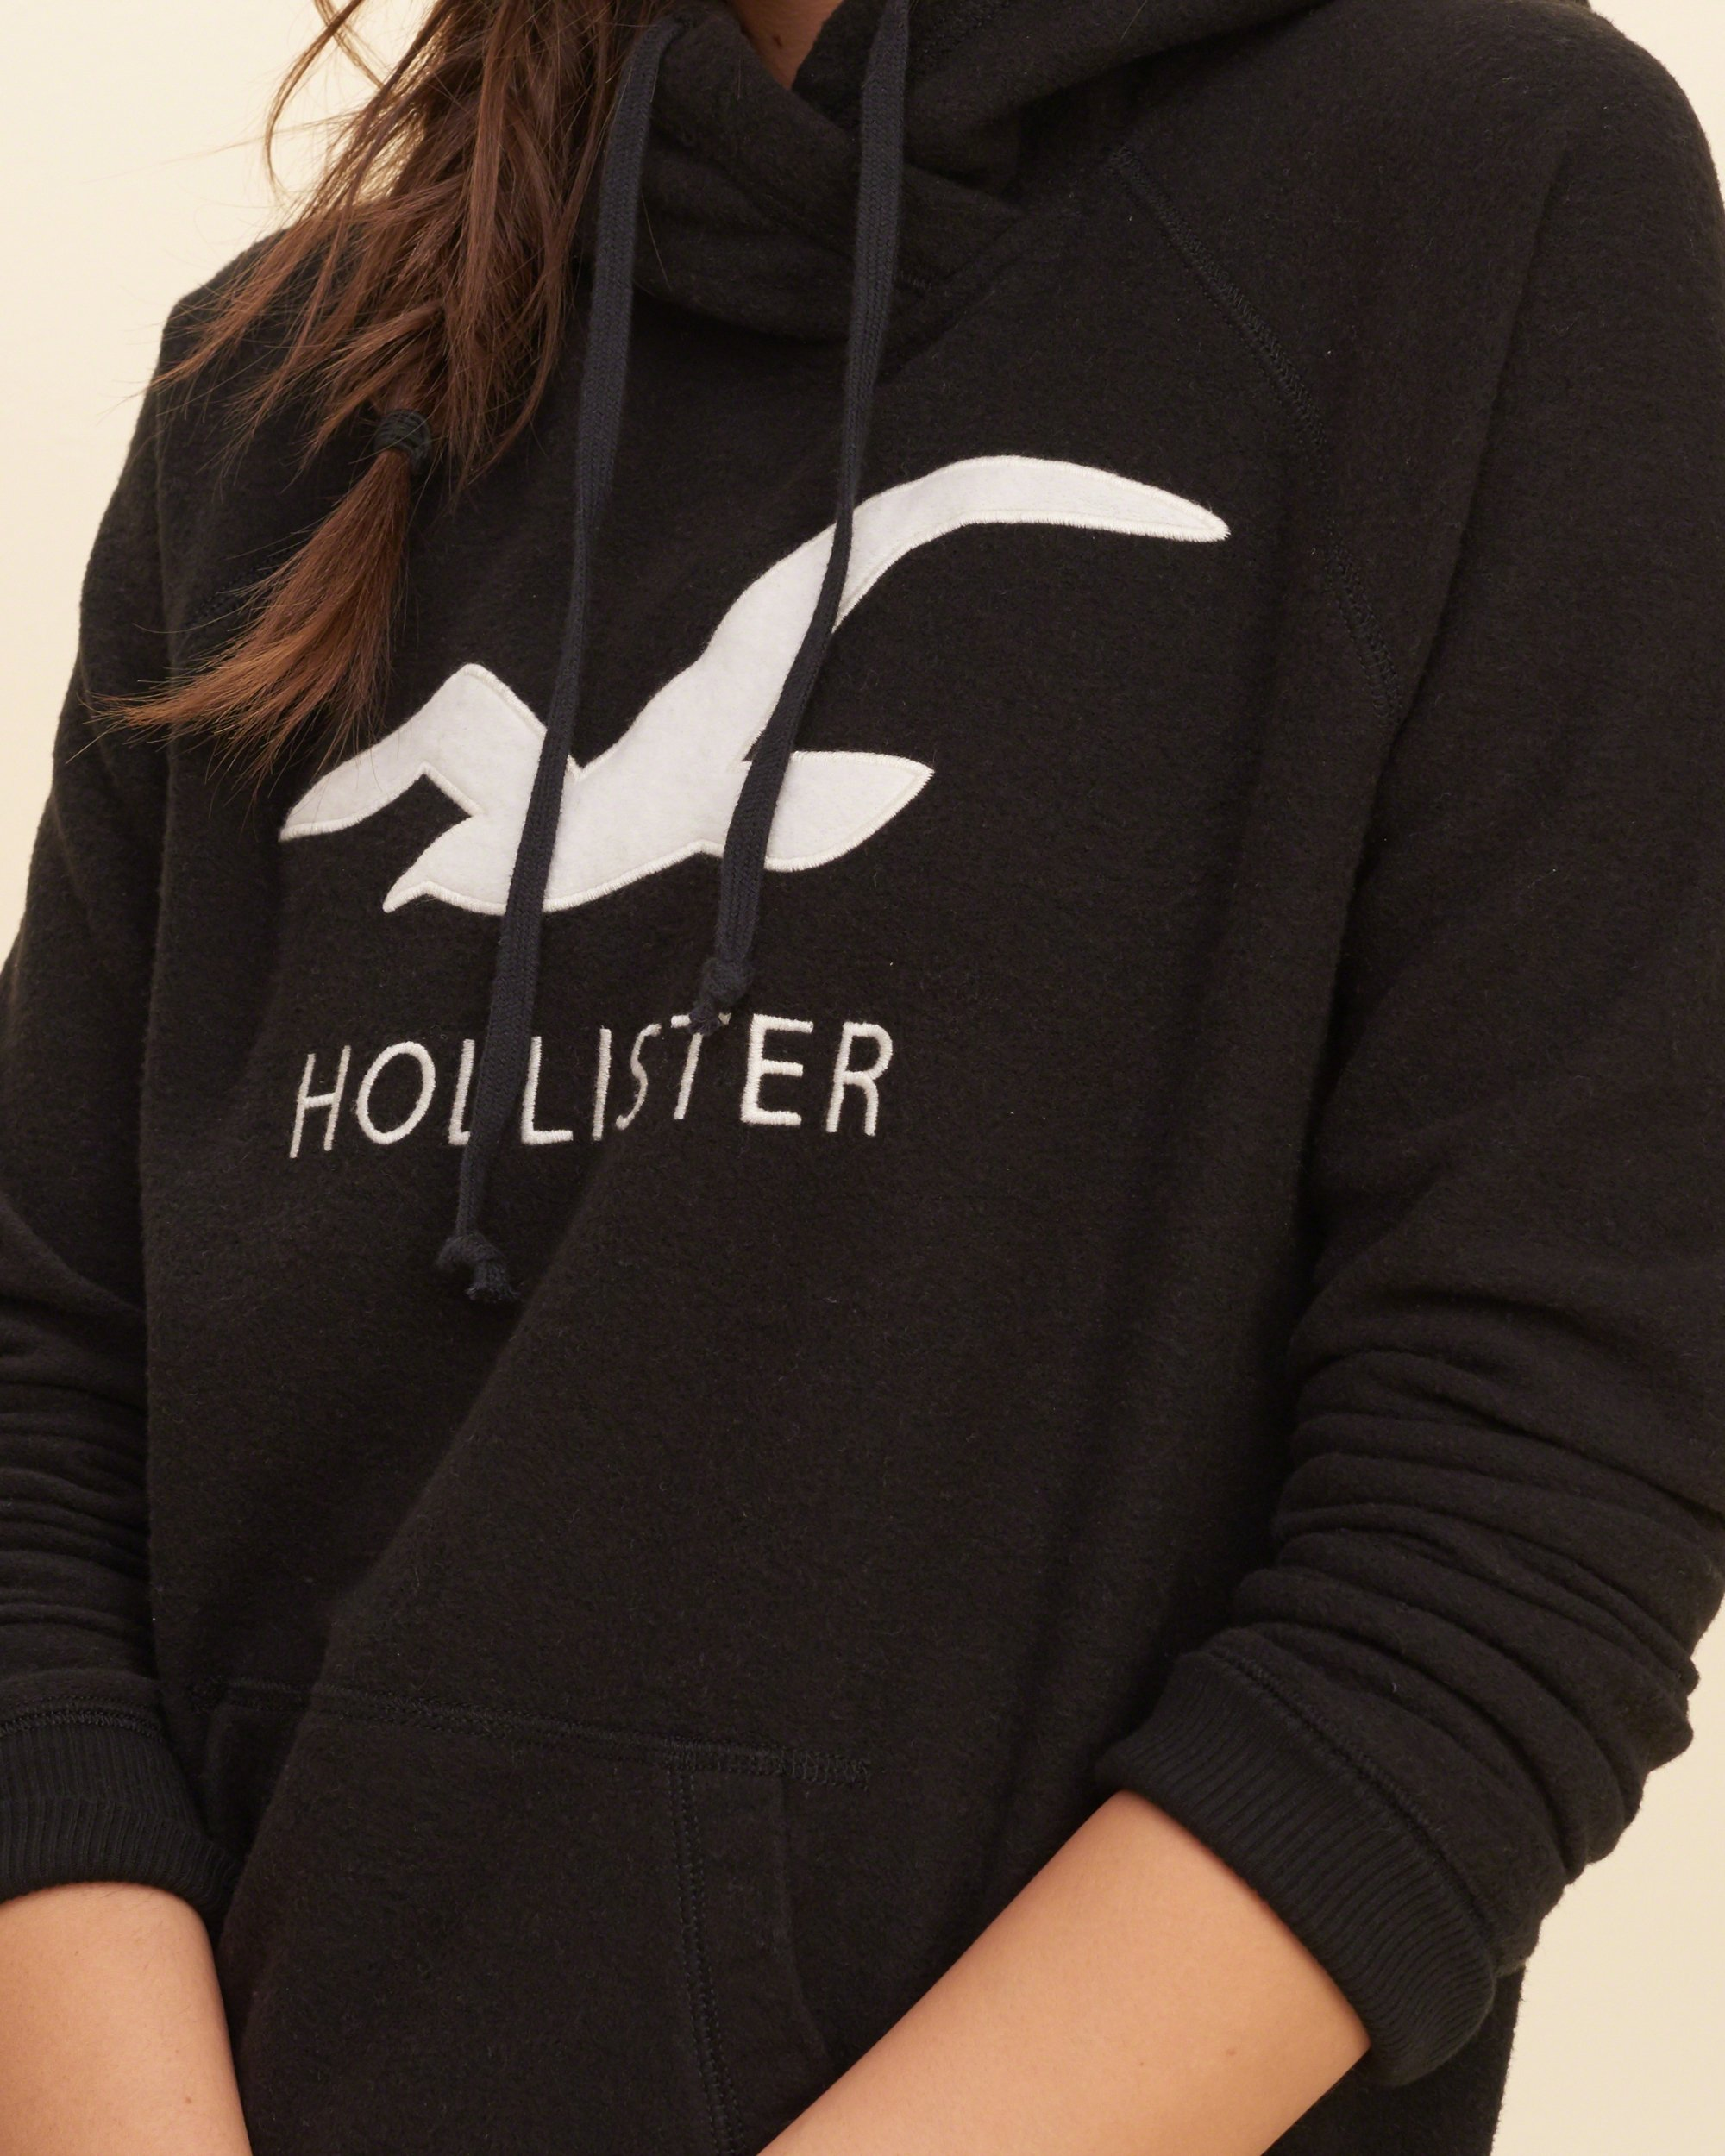 Hollister Sweaters Hollister Hoodies Hollister Shirts Hollister Jacket Hollister Pants Hollister Jeans: Hollister Logo Graphic Hoodie In Black